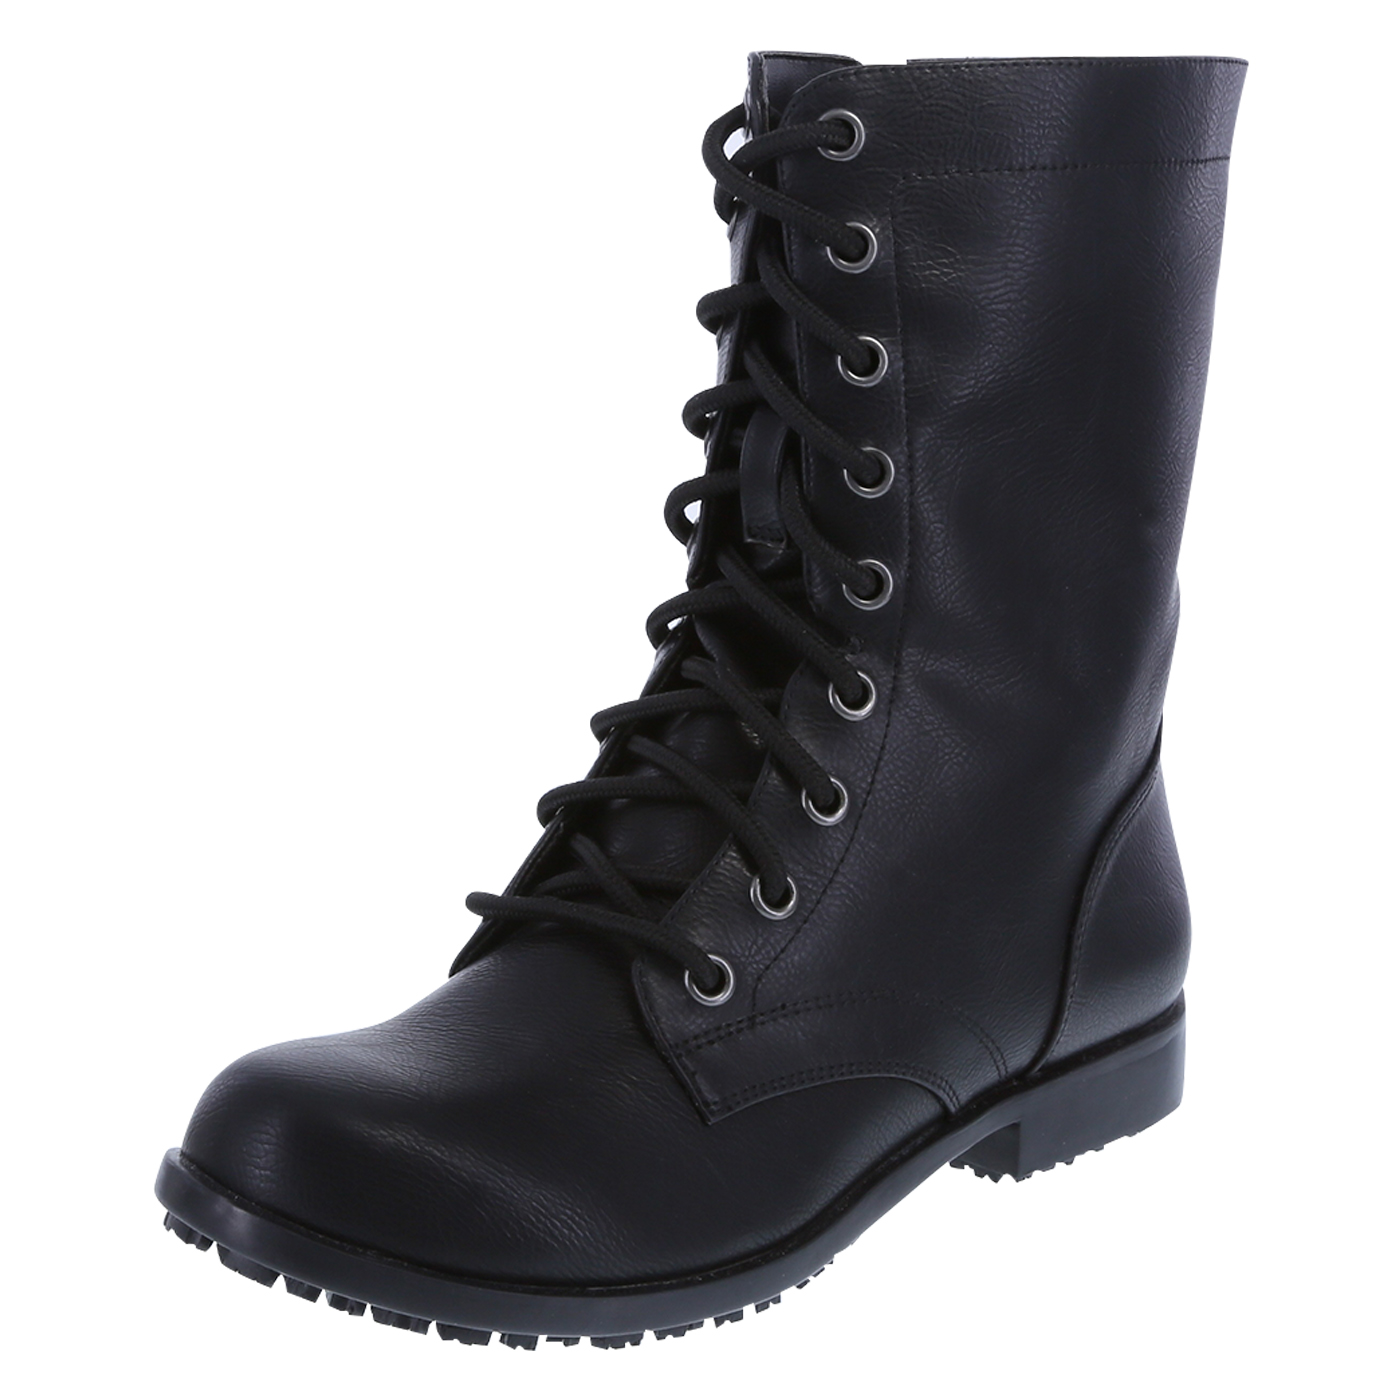 black boots for women womenu0026apos;s slip resistant brooke lace-up with zipper boots, black, hi pckjpxb